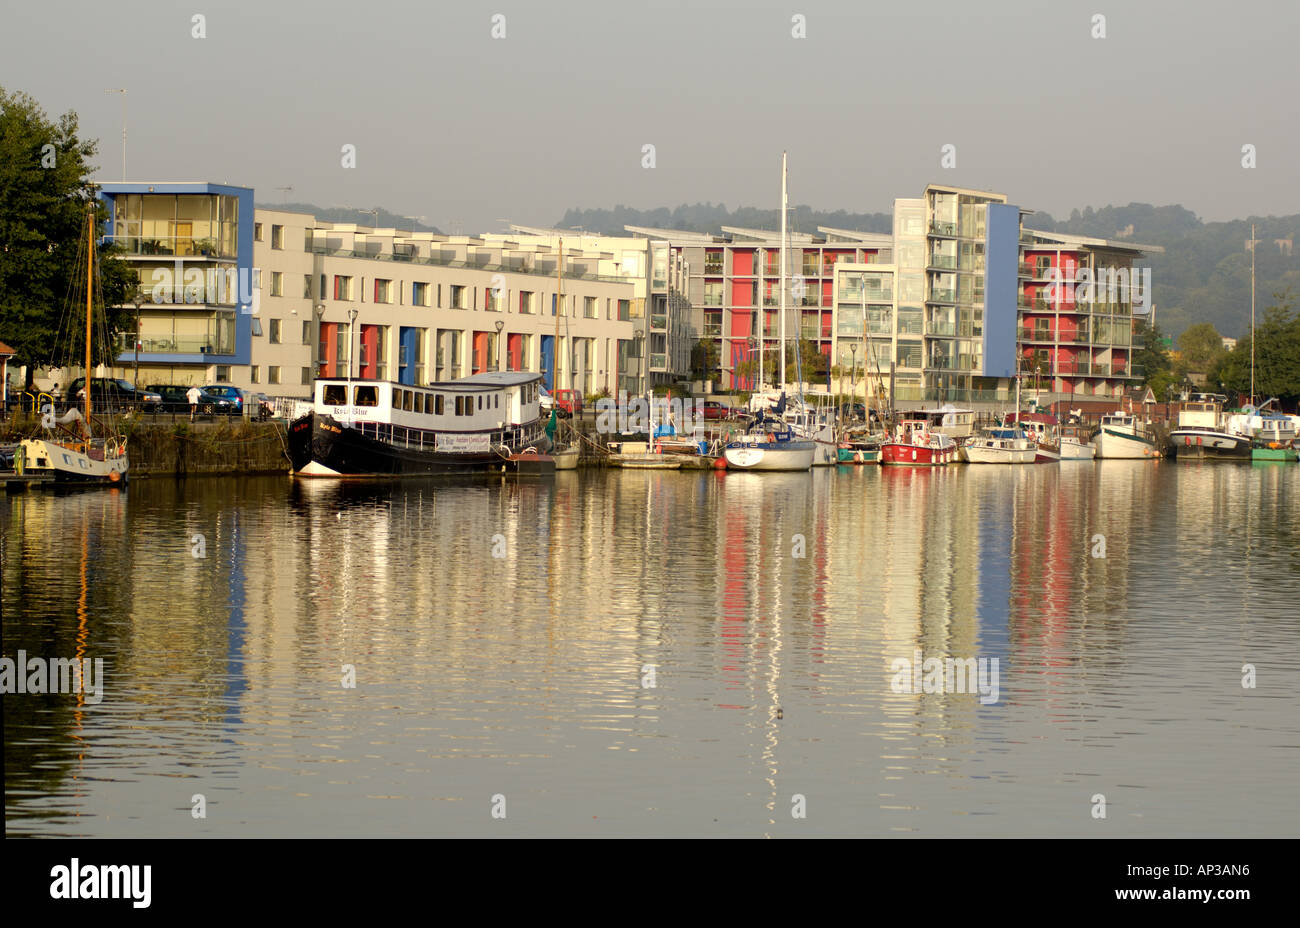 The Point Harbourside Apartments Bristol Stock Photo ...